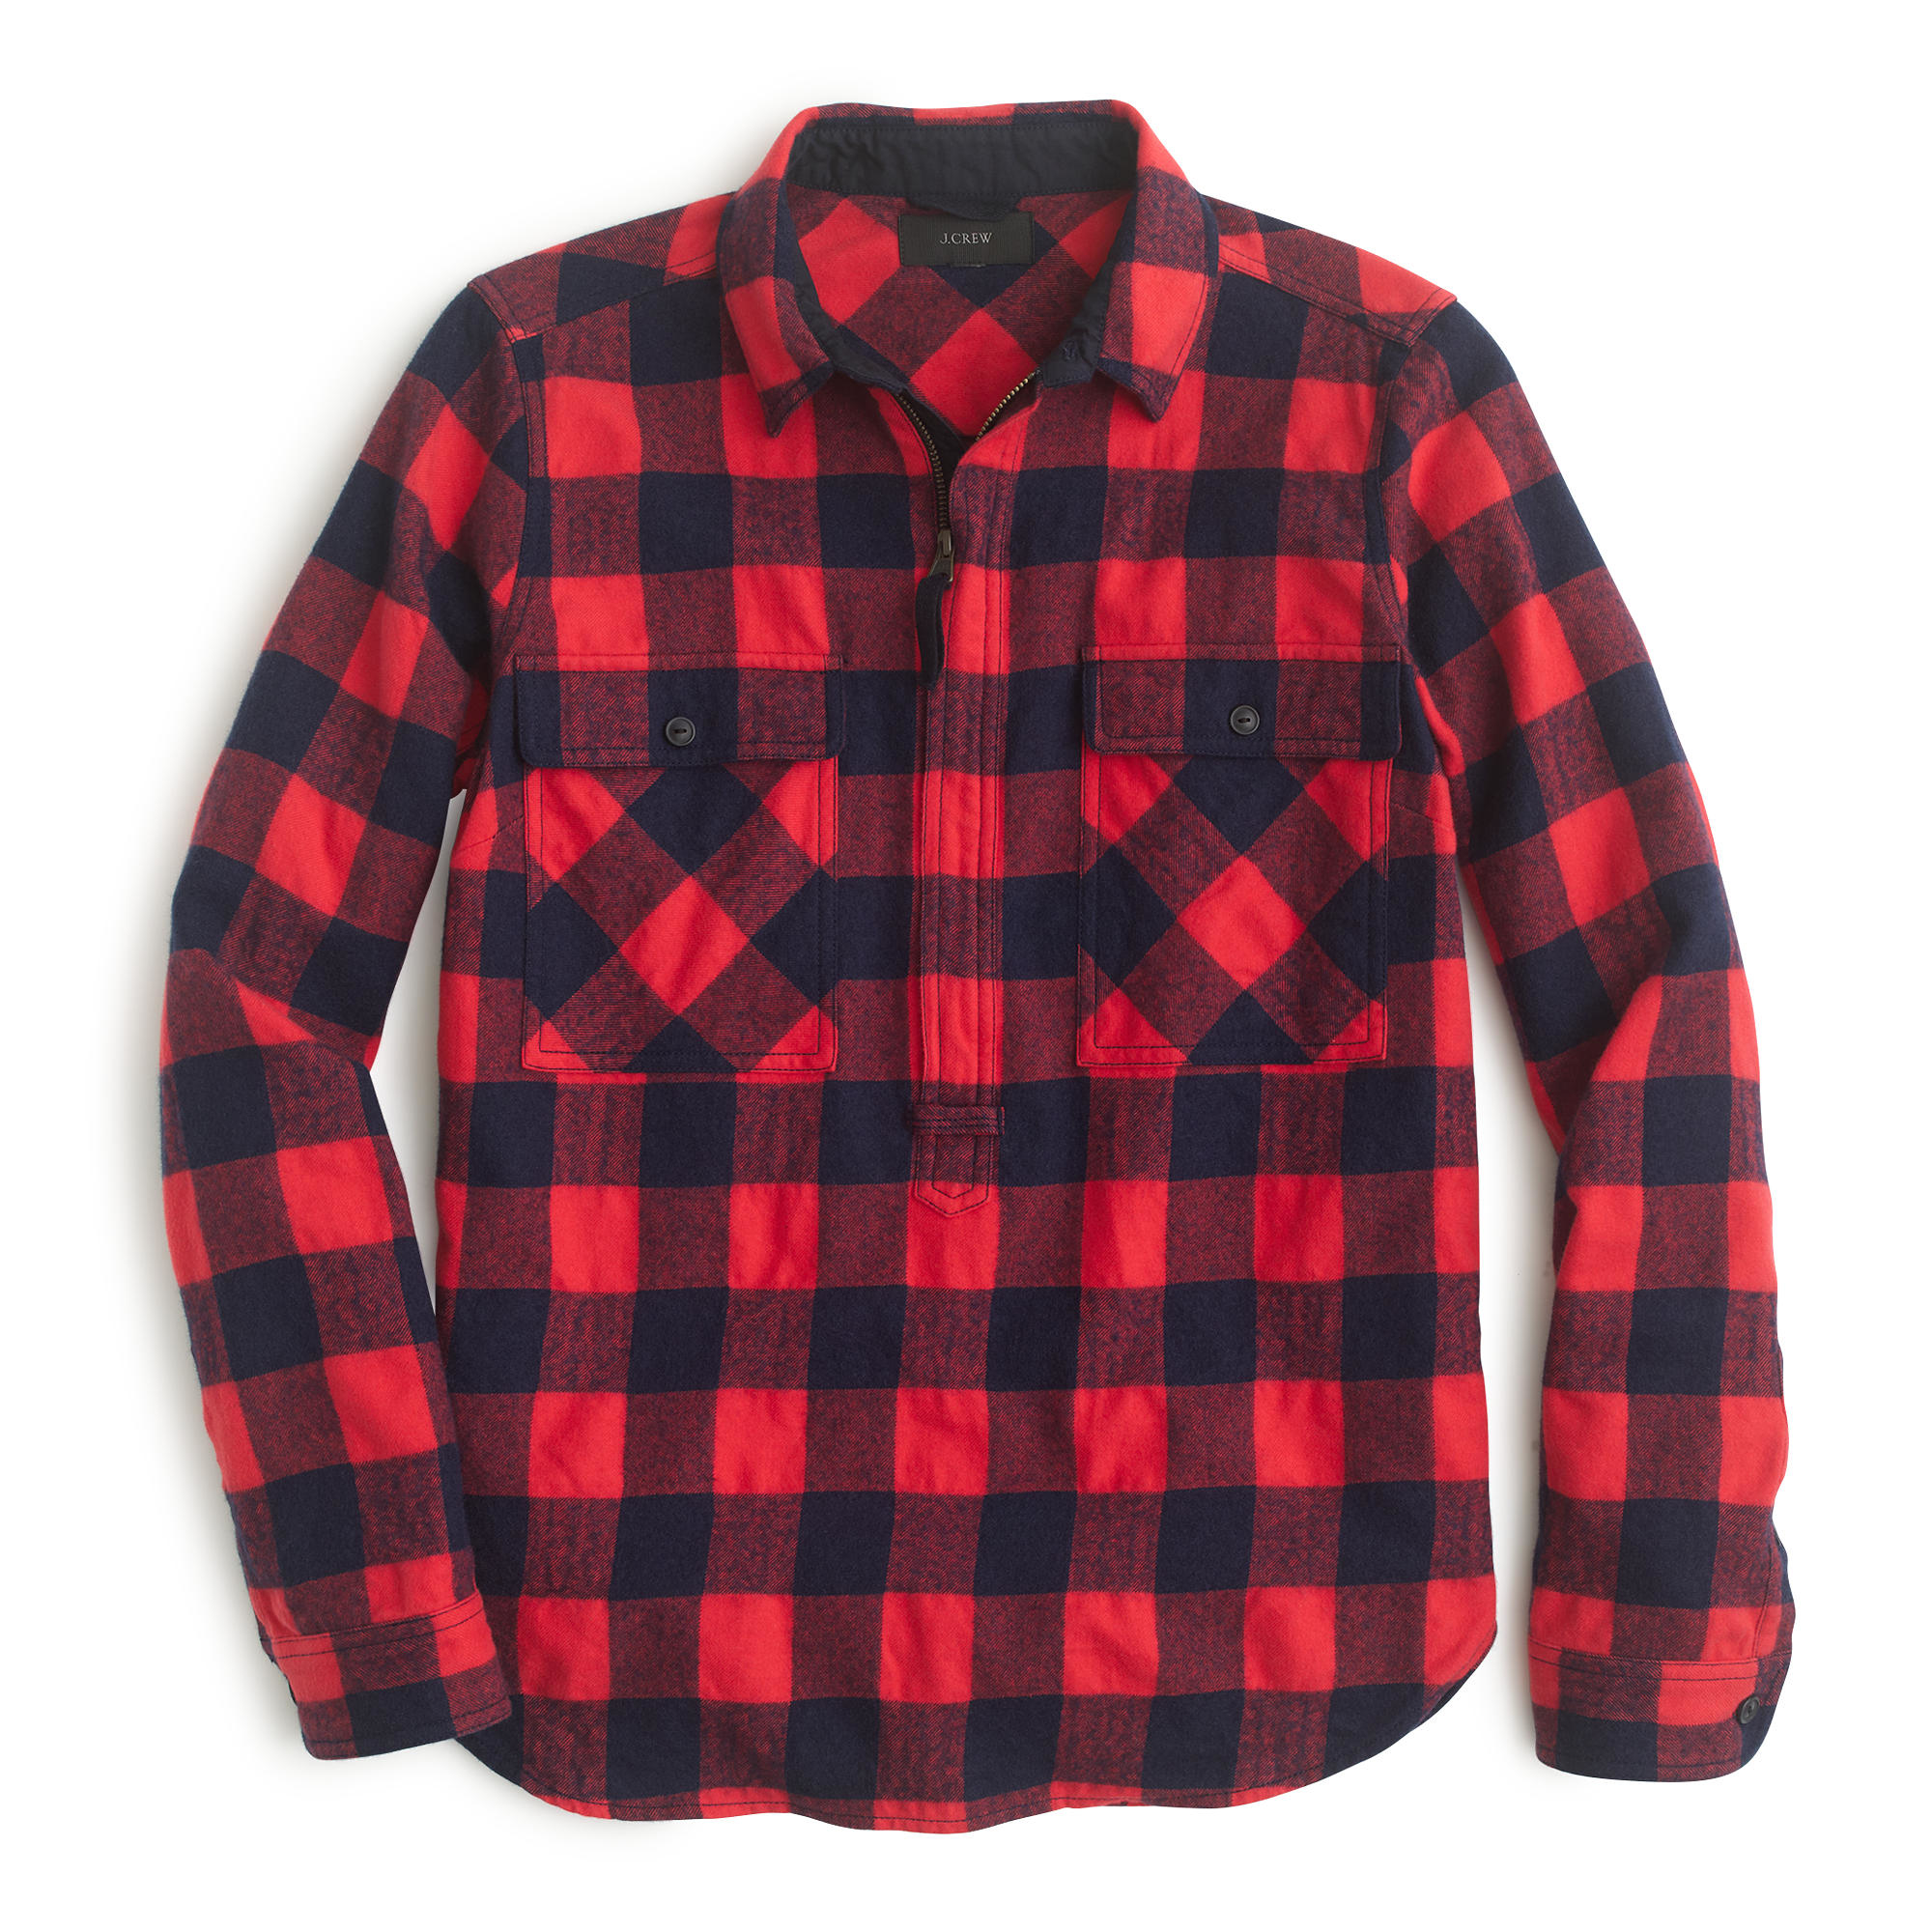 J.crew Buffalo Check Shirt-jacket in Red | Lyst